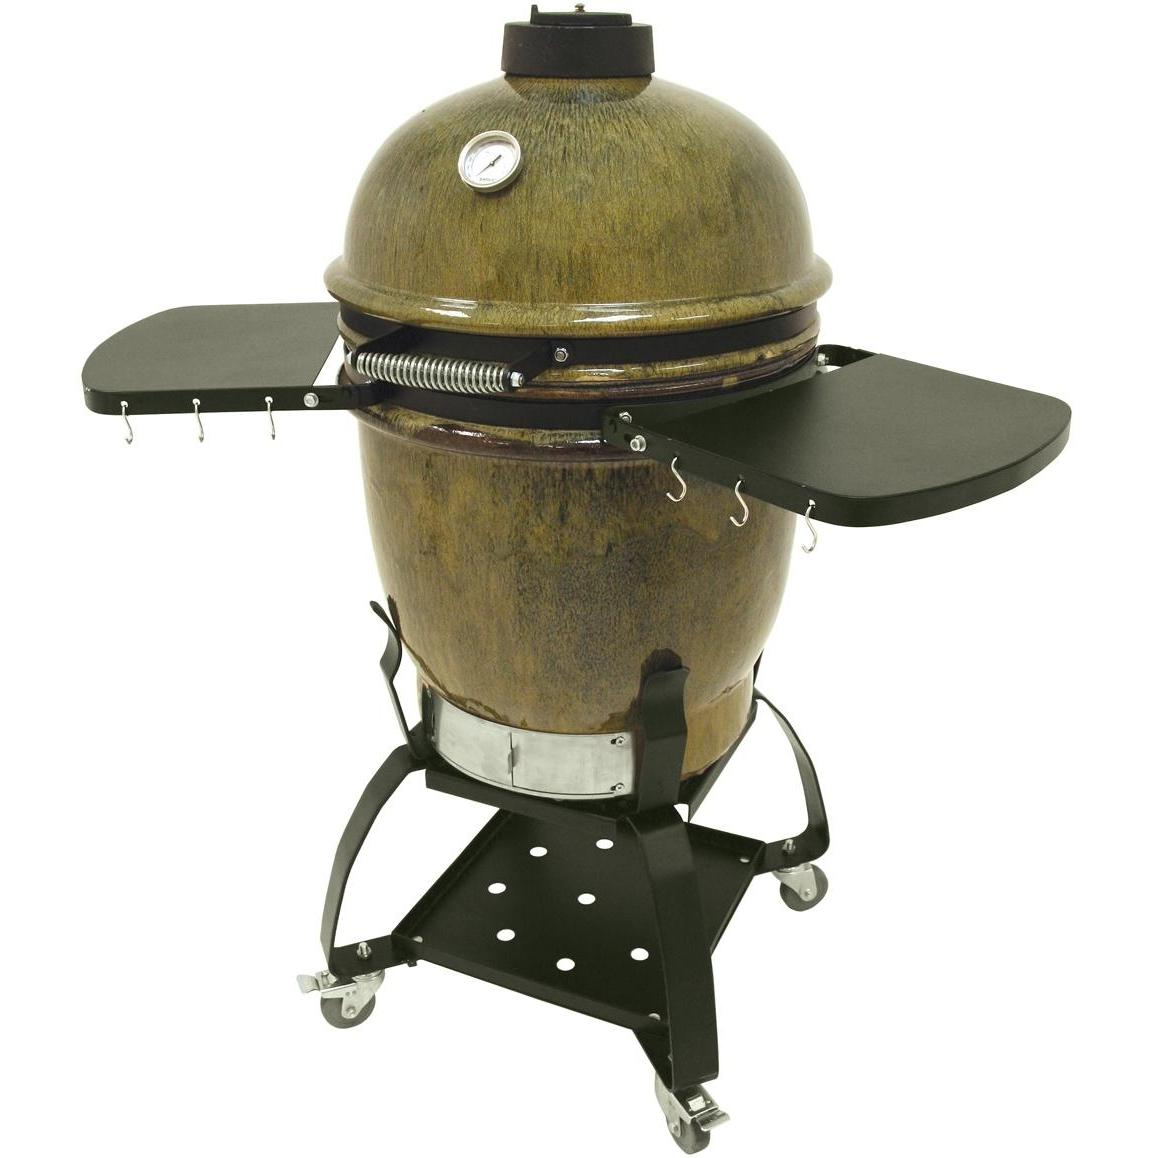 Bayou Classic Ceramic Cypress Grill On Cart, Discount ID 500-515